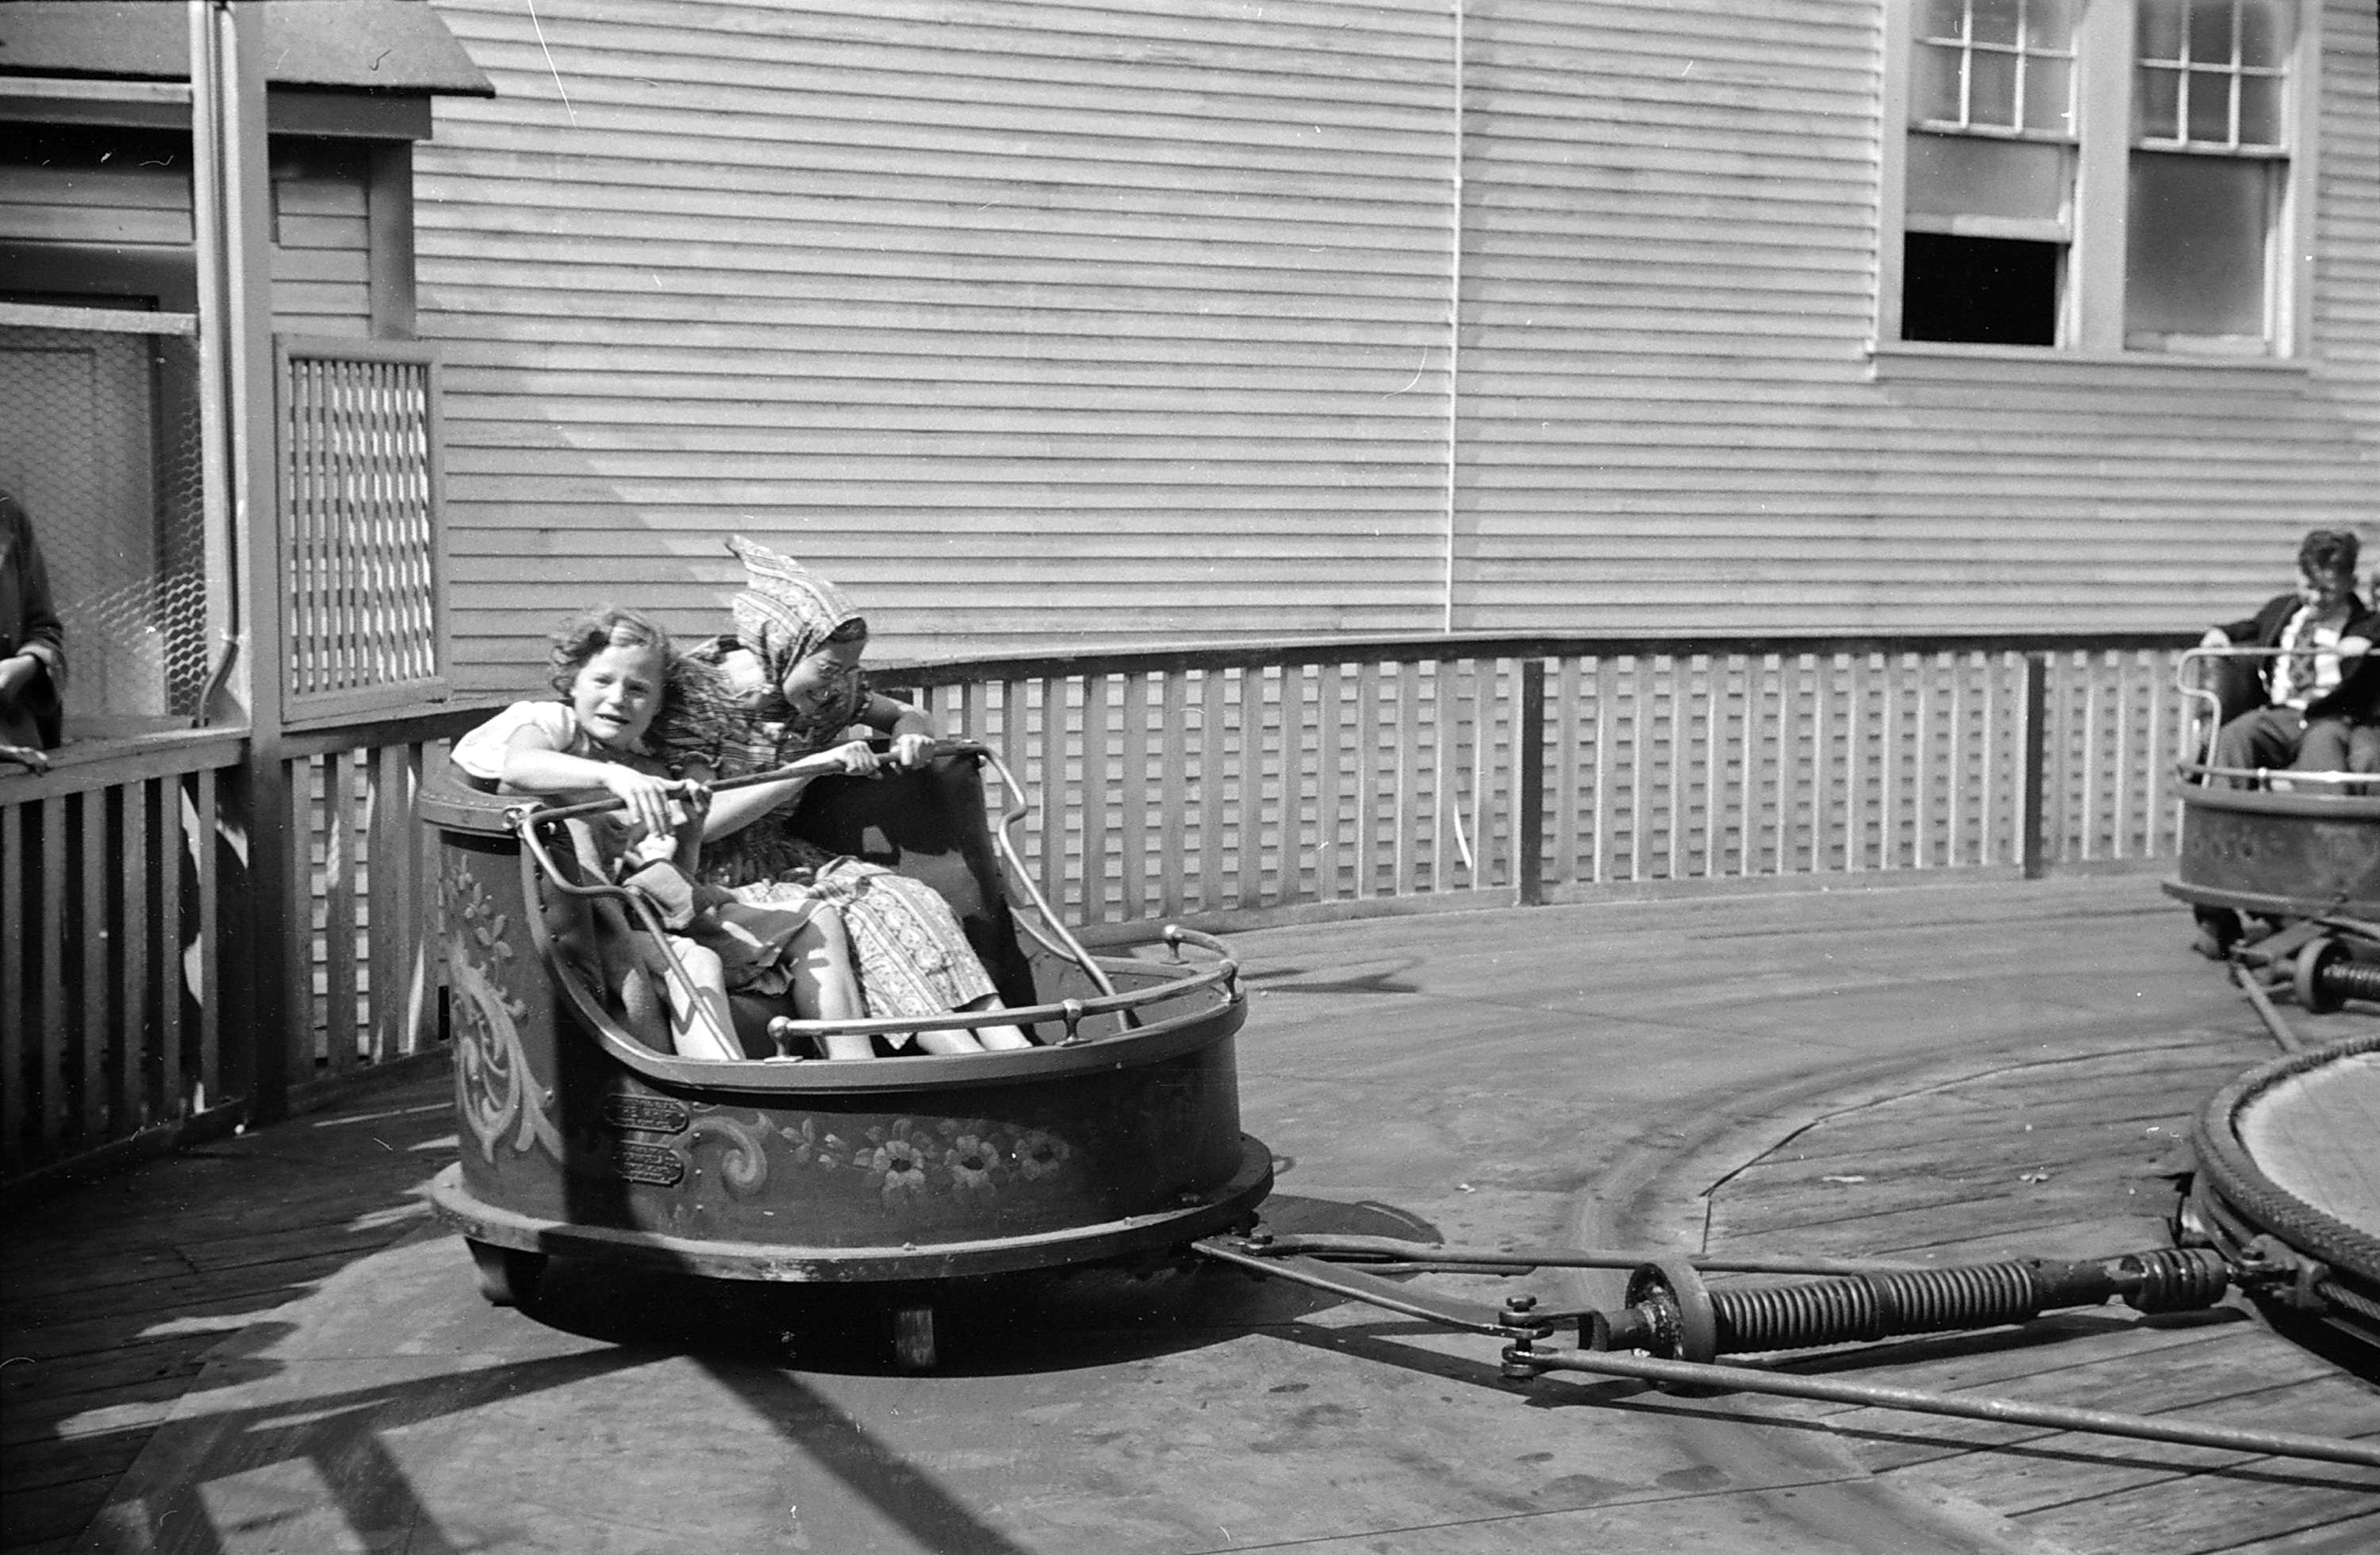 Two girls sit in a fair ride car swinging in a circle. One looks thrilled, while the other scared.